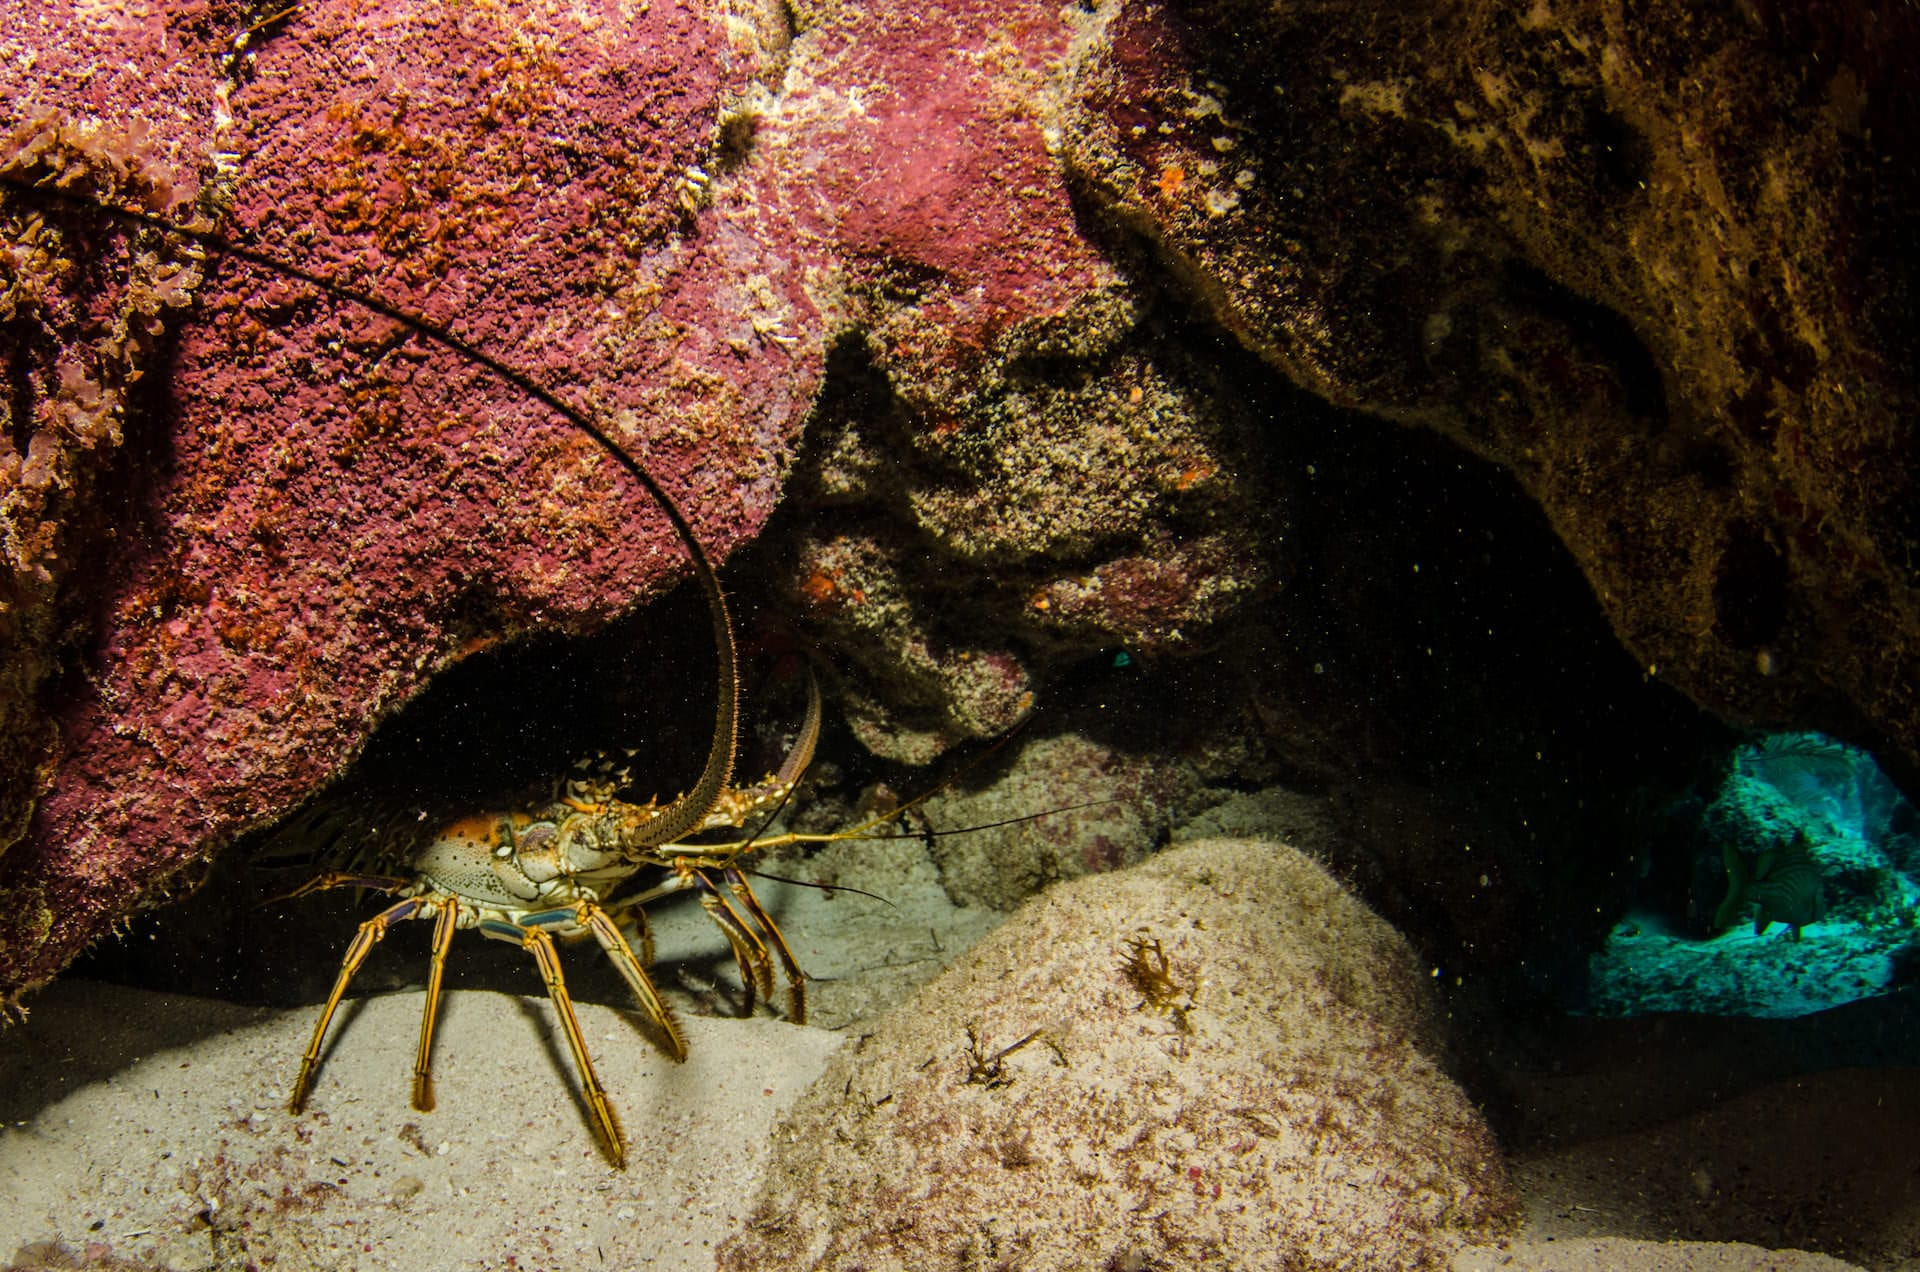 lobster hiding under a rock